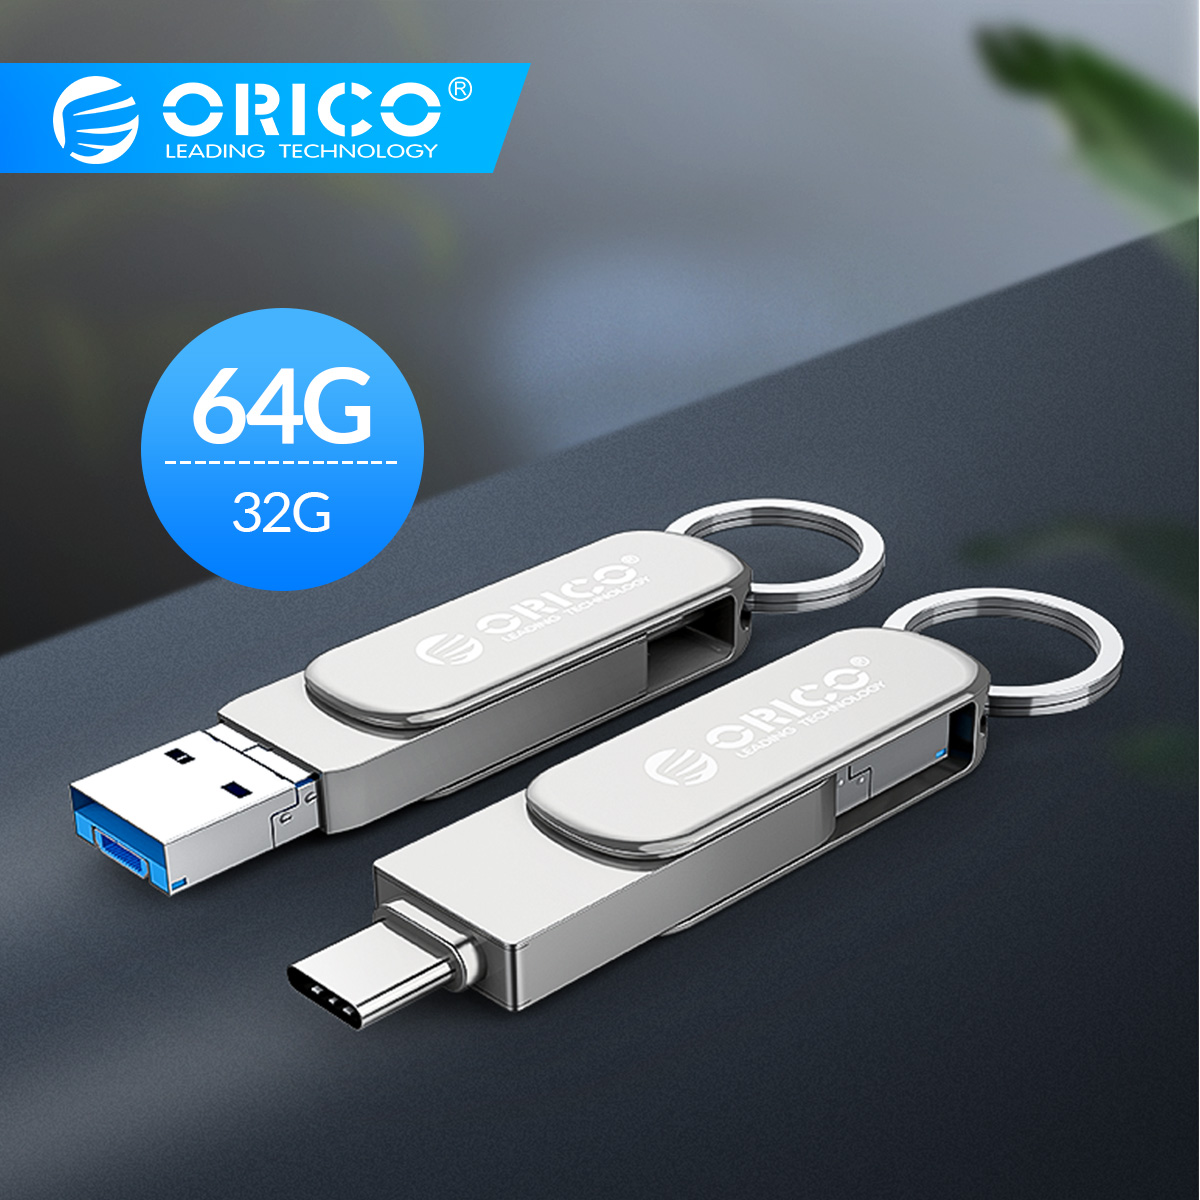 ORICO 3-In-1 OTG USB-Stick Typ-C USB3.0 Micro-B 64GB 32GB USB3.0 Flash Memory USB Stick-U Disk Für Telefon/Tablet/PC